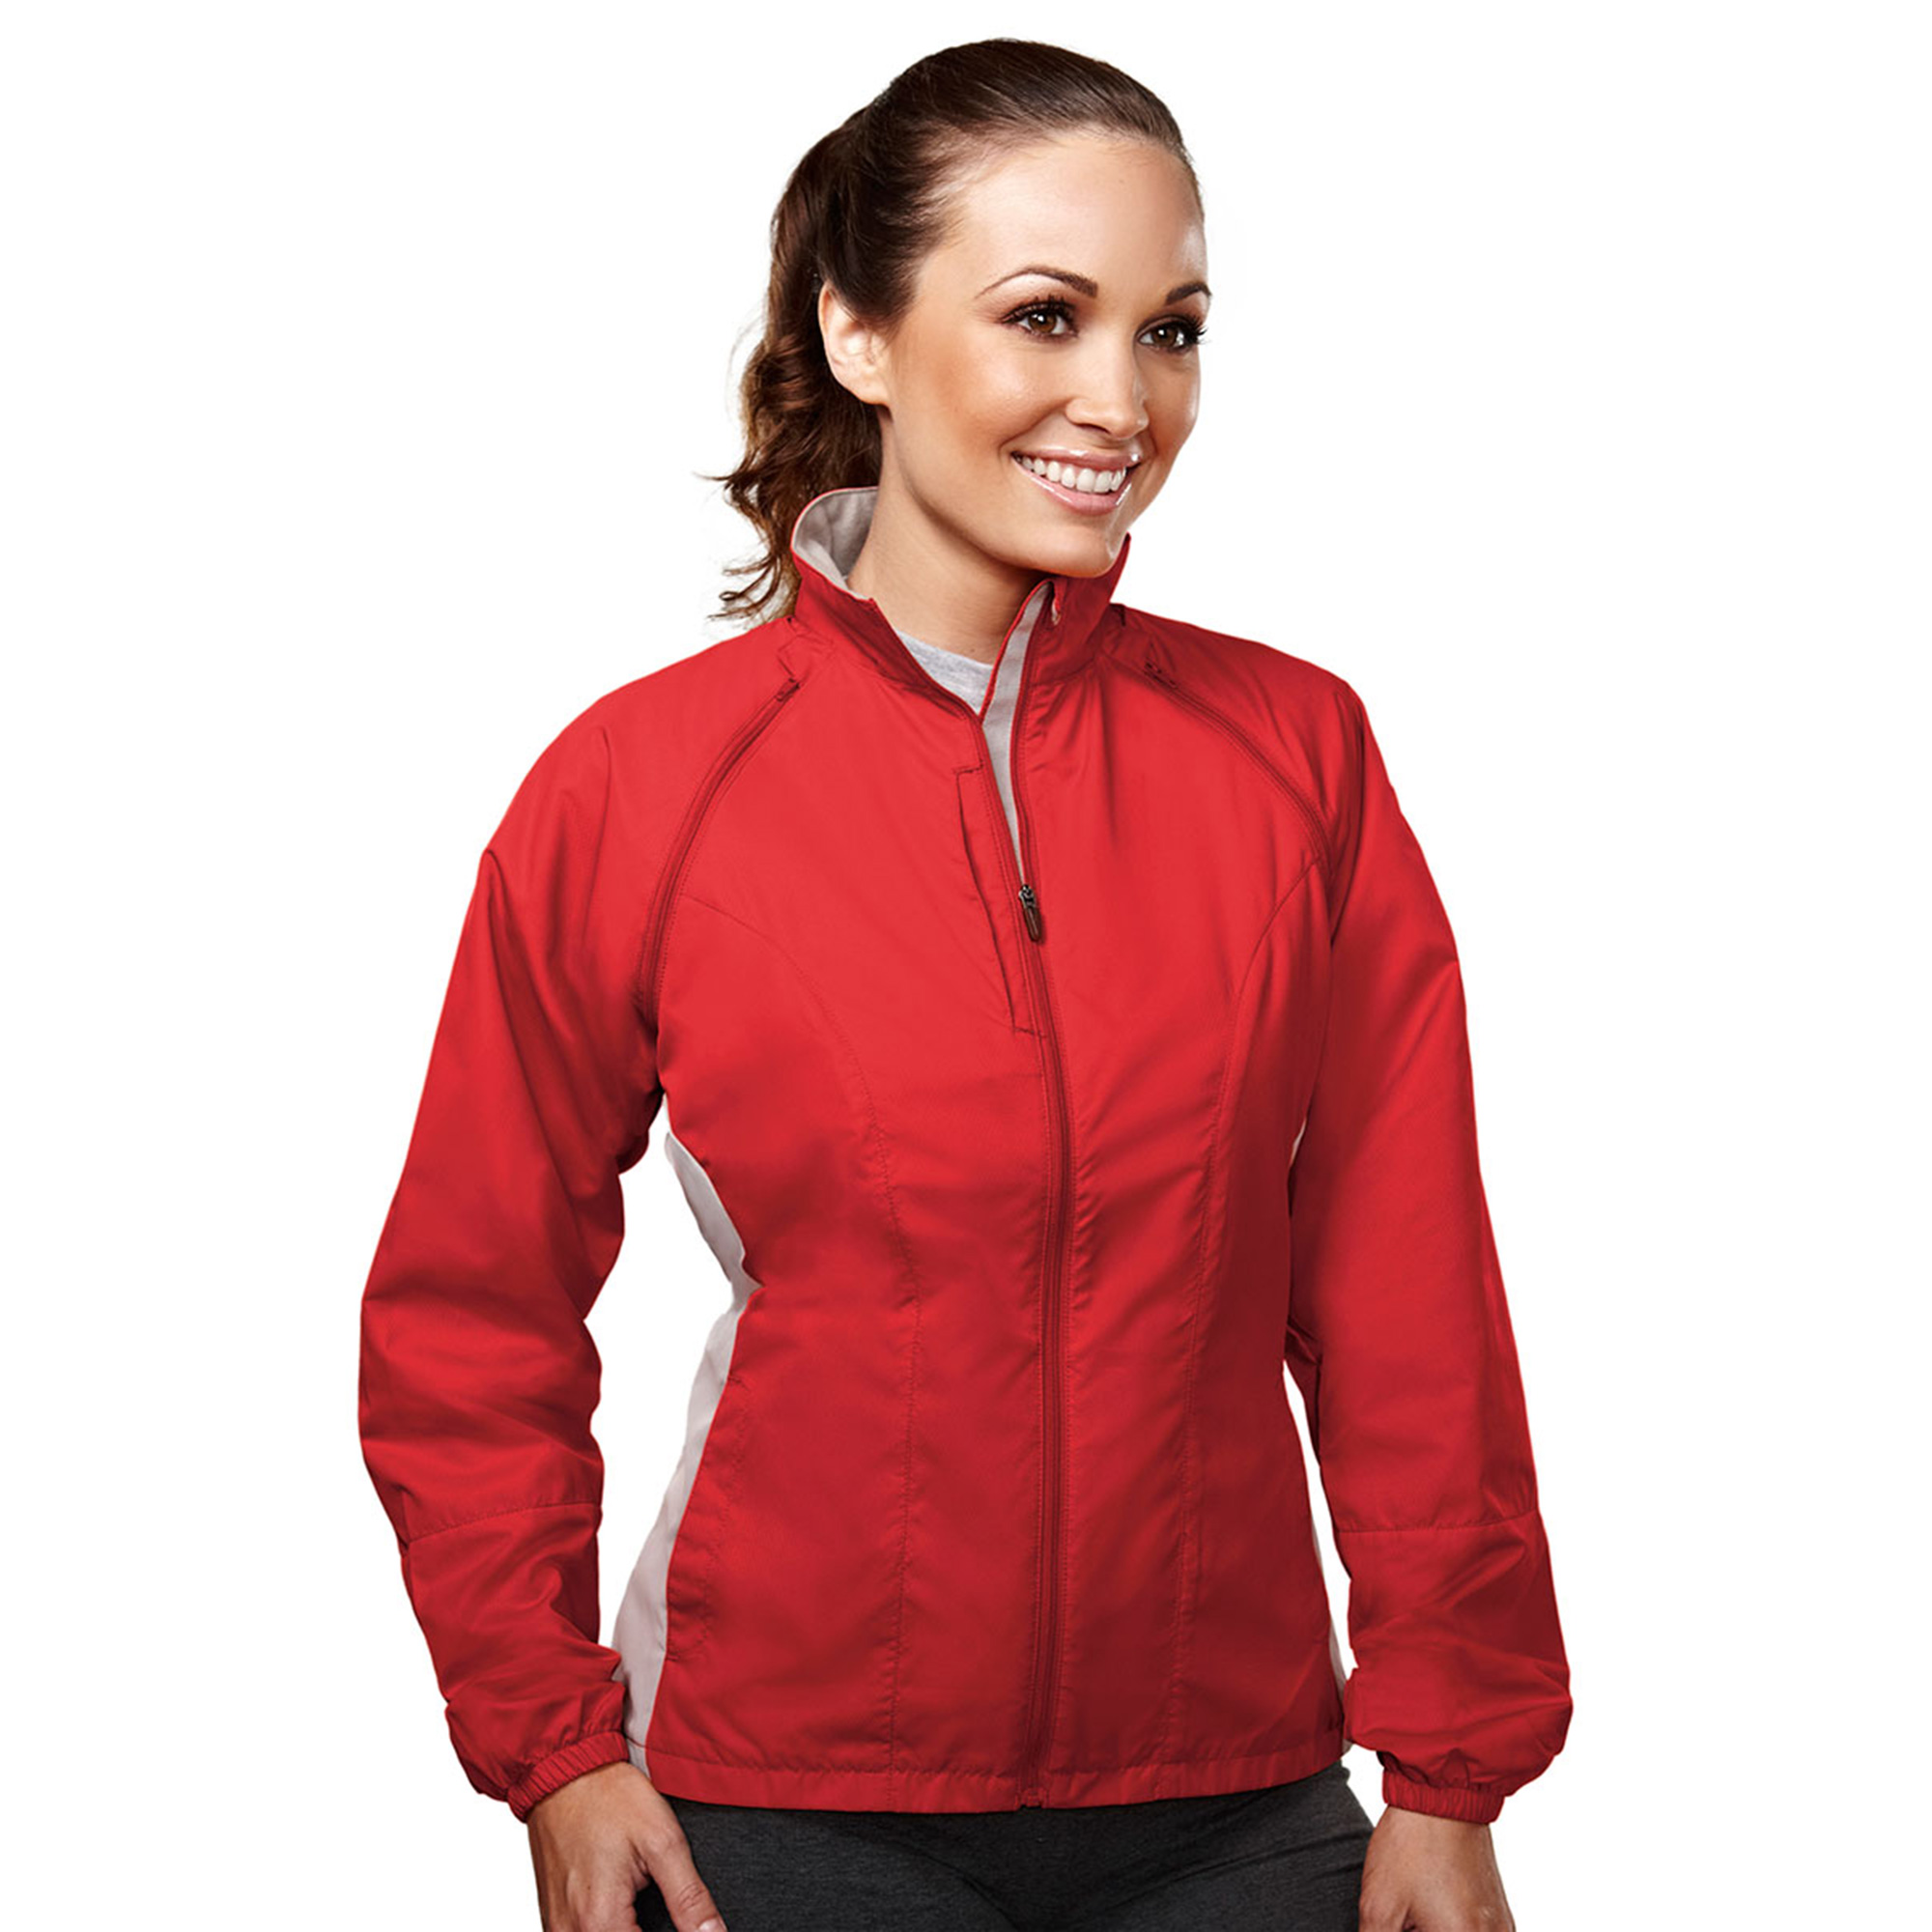 Tri-Mountain Women's Full Zip Cycling Jacket